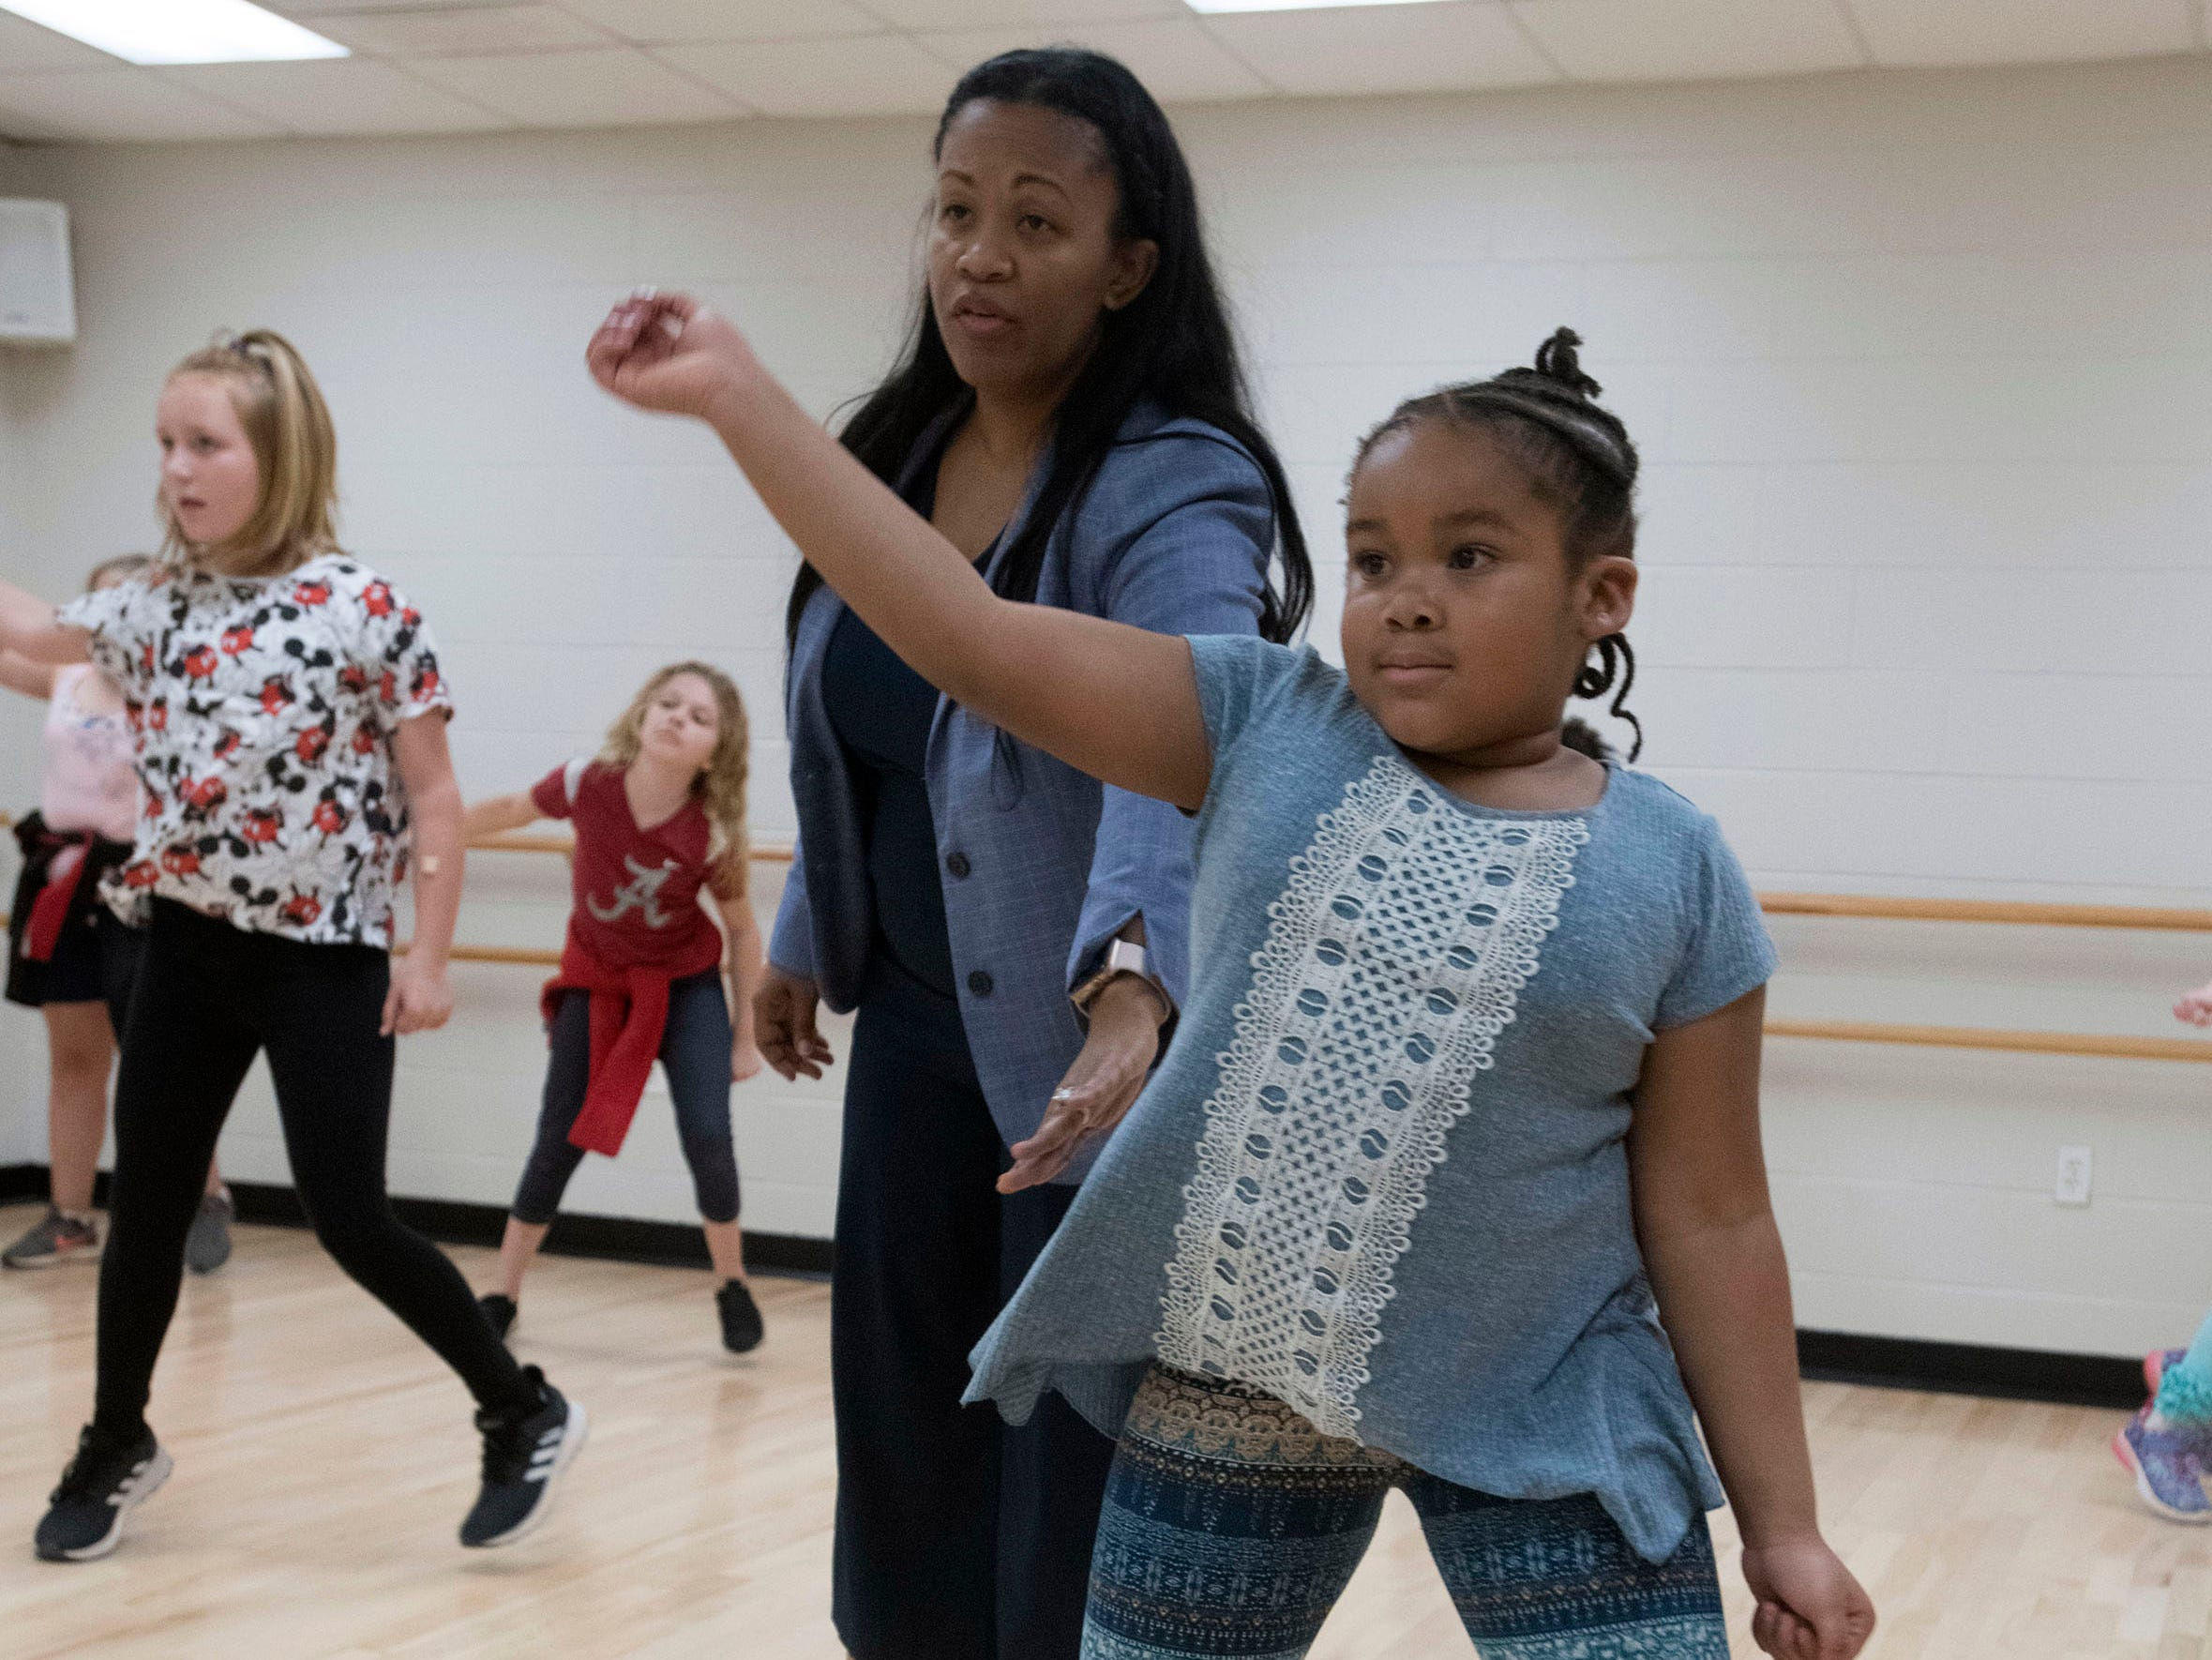 Joy Gainer help to teach Janelle Williams, 6, and other children a few hip hop dance moves during a class at the Gull Point Community Center on Spanish Trail on Wednesday, March 13, 2019.